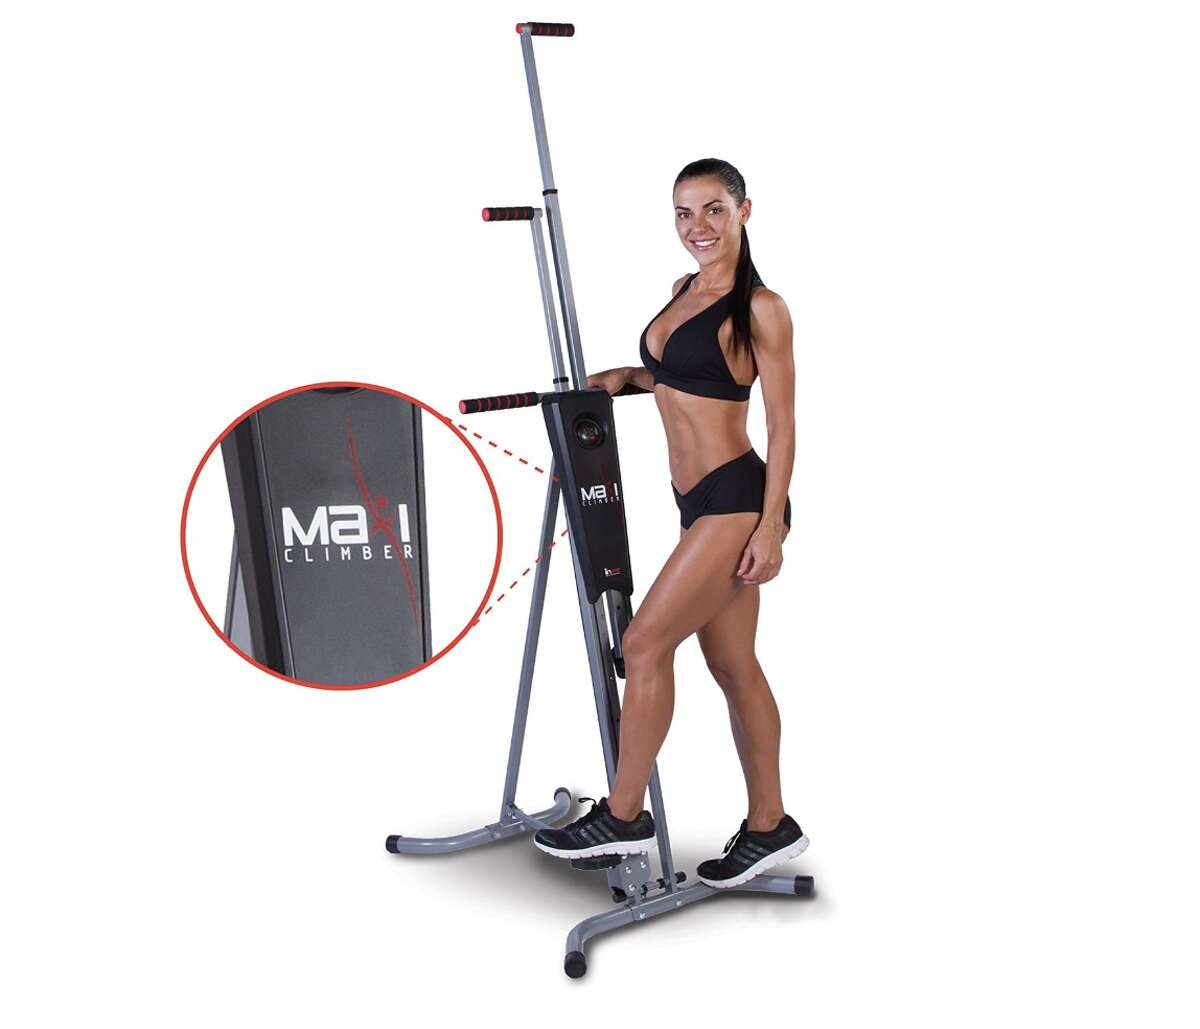 1) MaxiClimber The Original Patented Vertical Climber: $199.99 Shop Now ICYMI, this vertical climber has over 4,300 reviews on Amazon. Why? Well, it comes with a Fitness App that helps you track your workout as you go, something you don't find often when it comes to these machines. Plus, it arrives at your doorstep almost entirely assembled, so that's always a win.